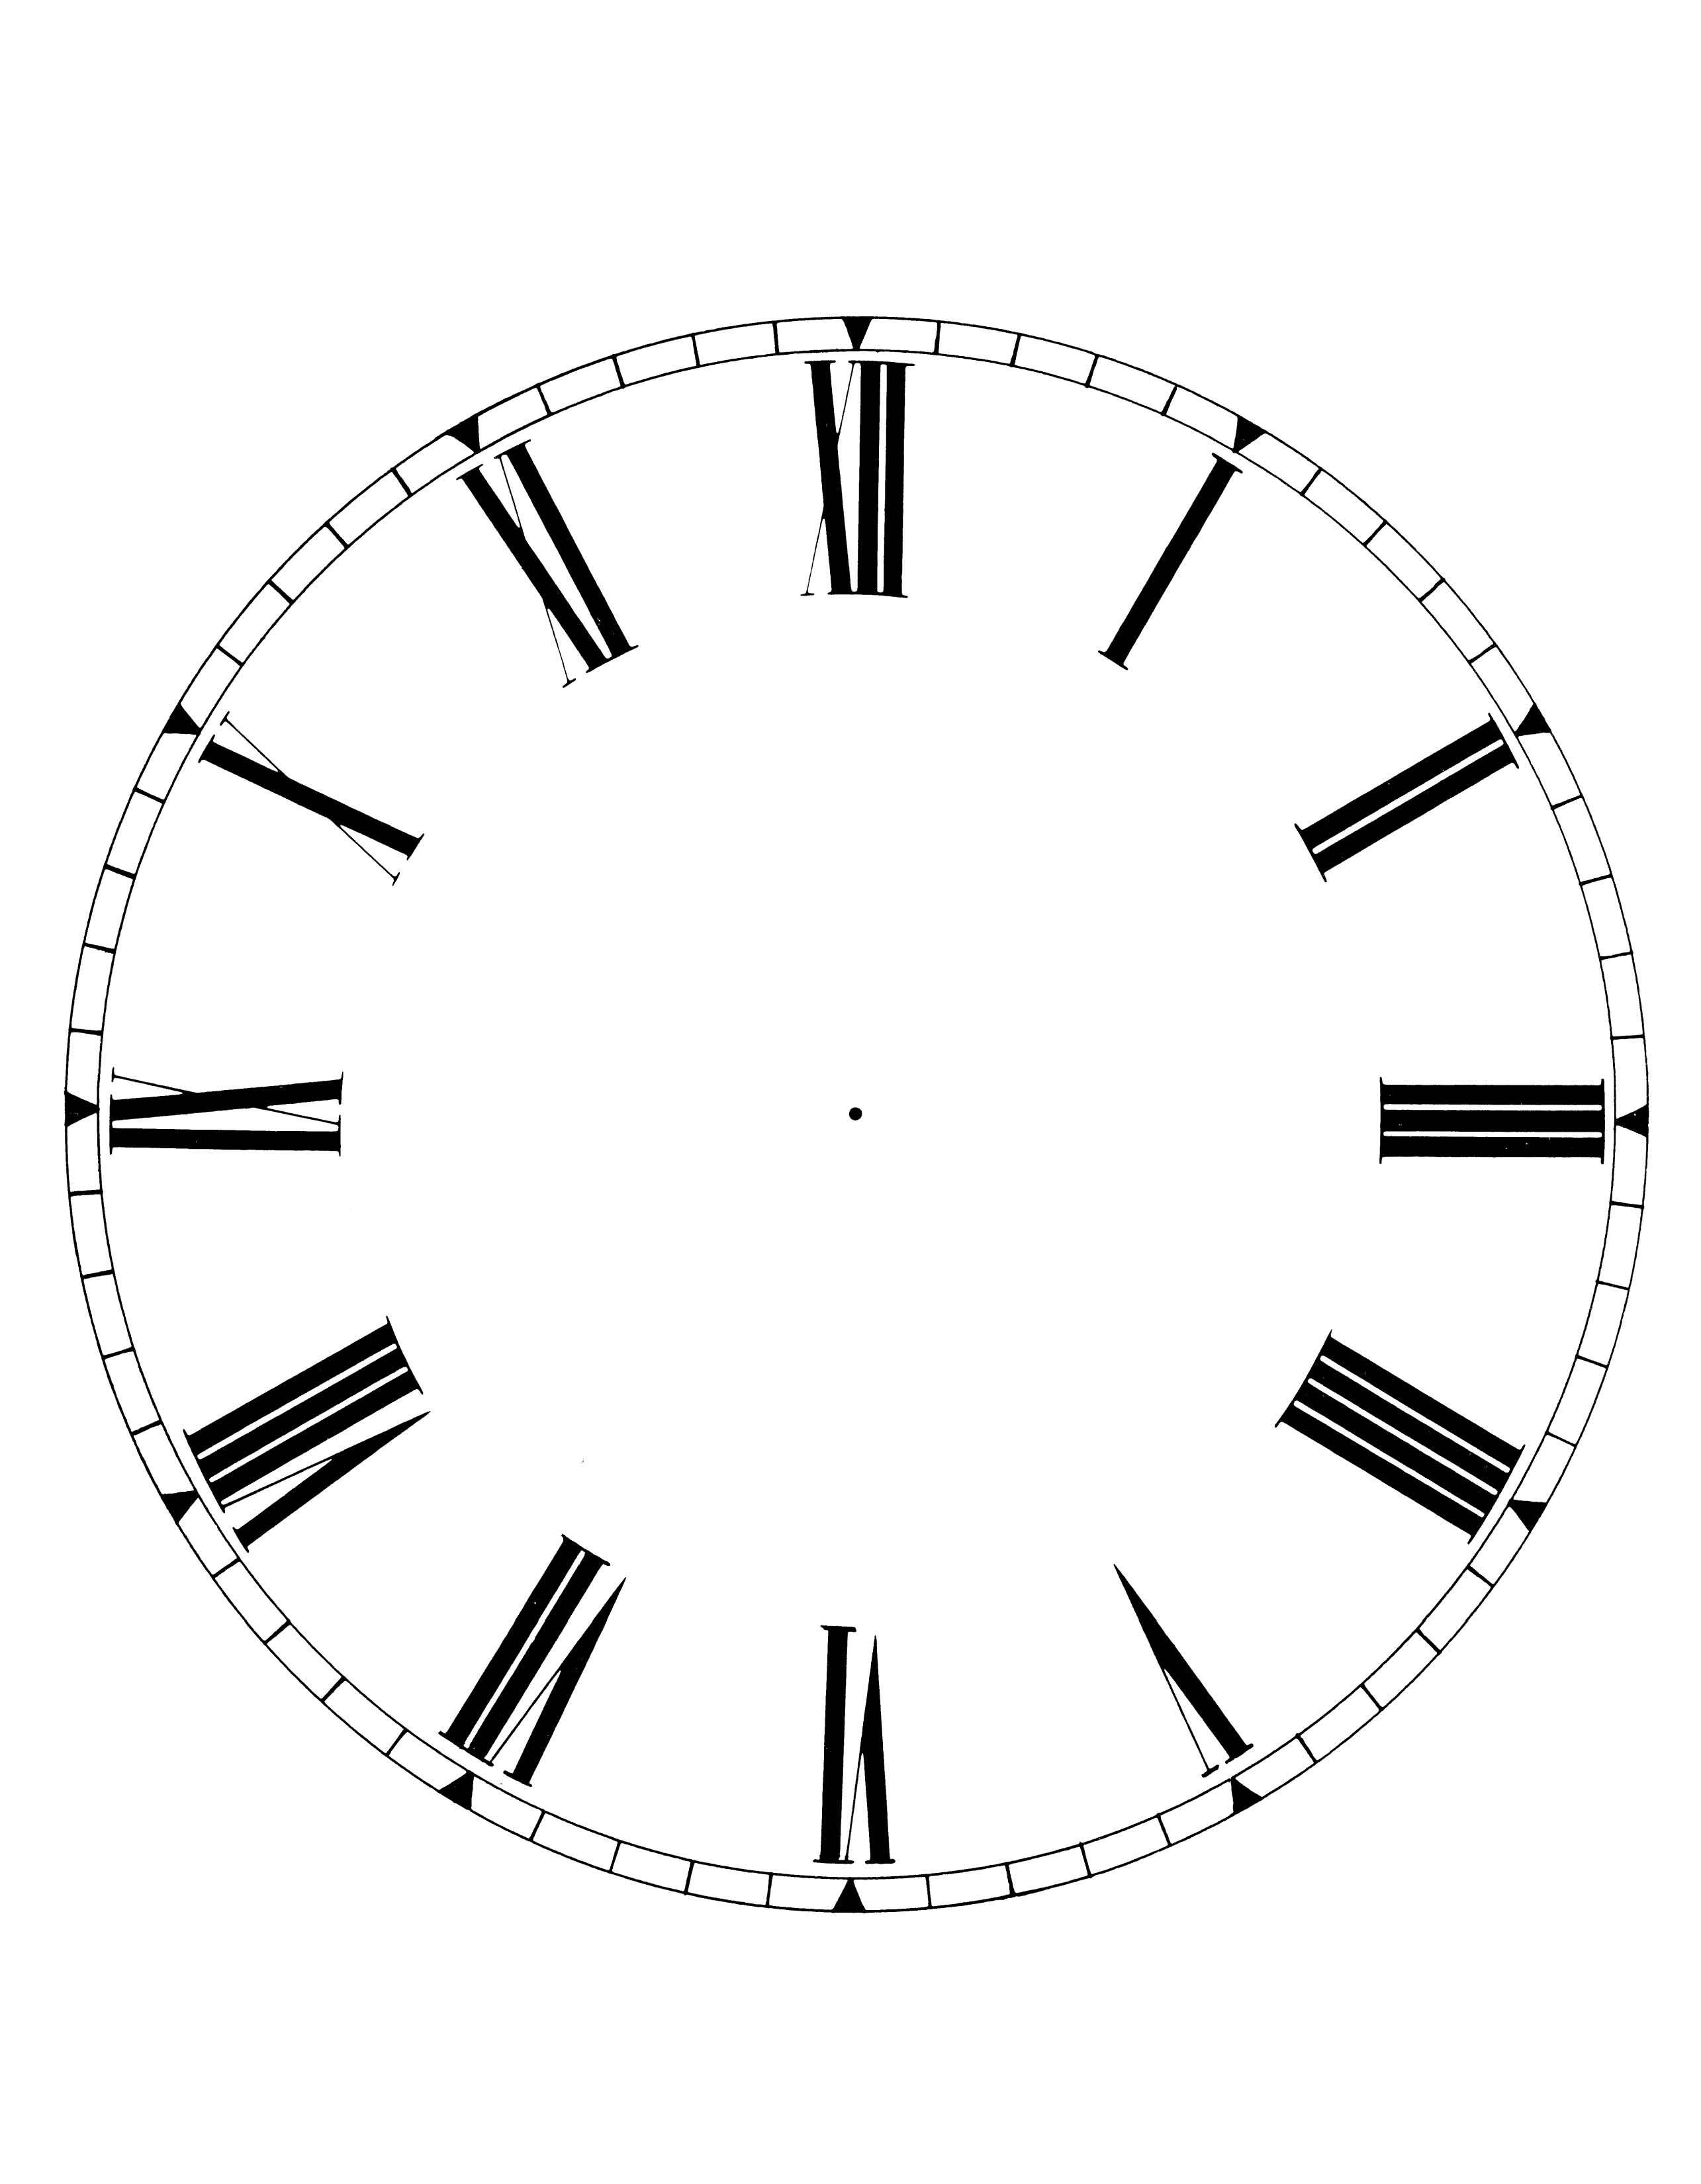 image relating to Blank Clock Face Printable named Blank Clock Faces Printable Video game Shelter